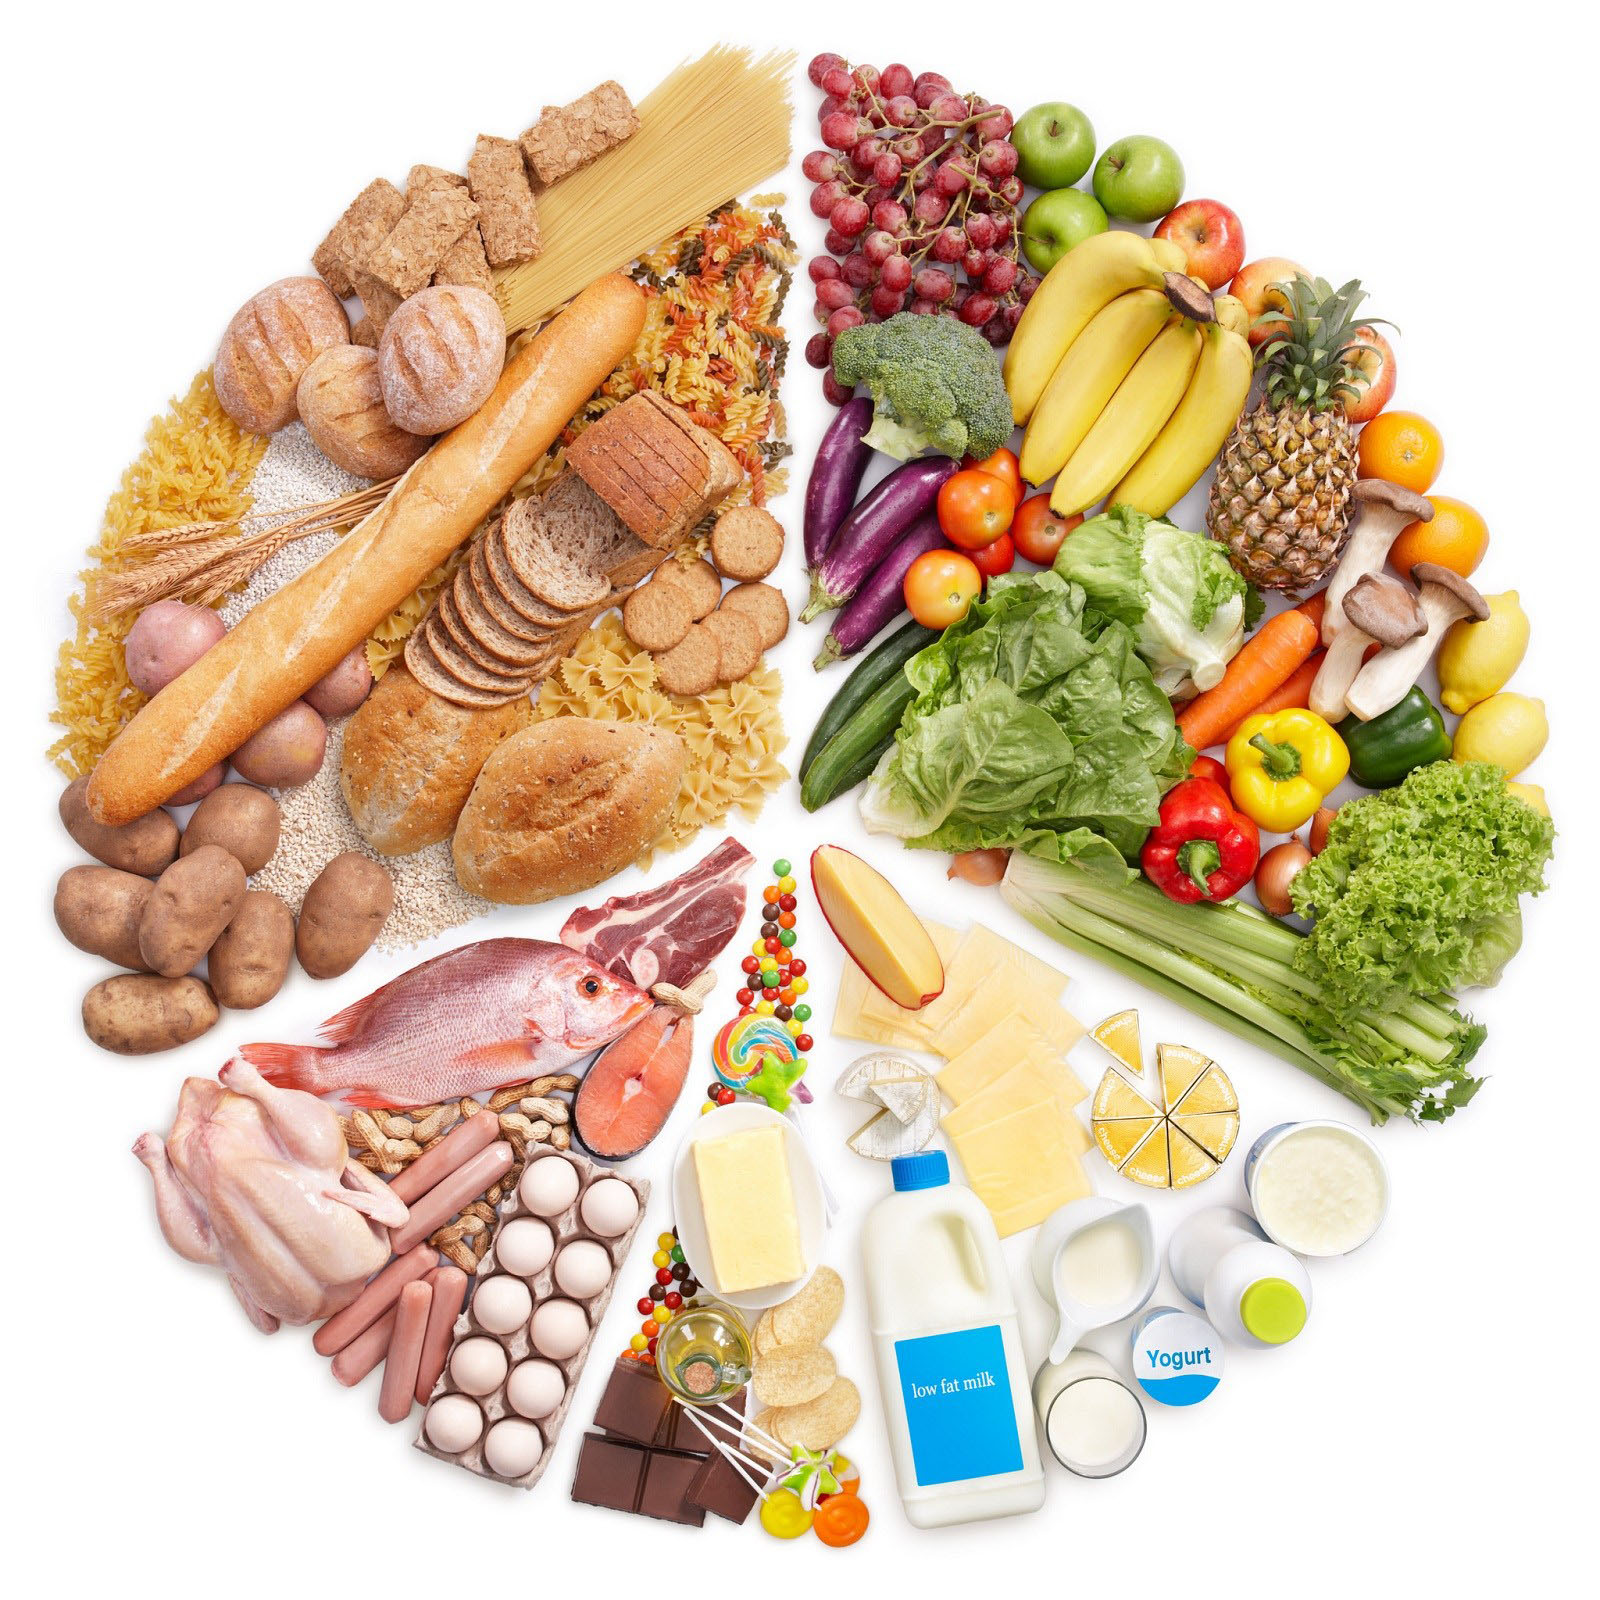 healthy food, weight loss food, high protein food